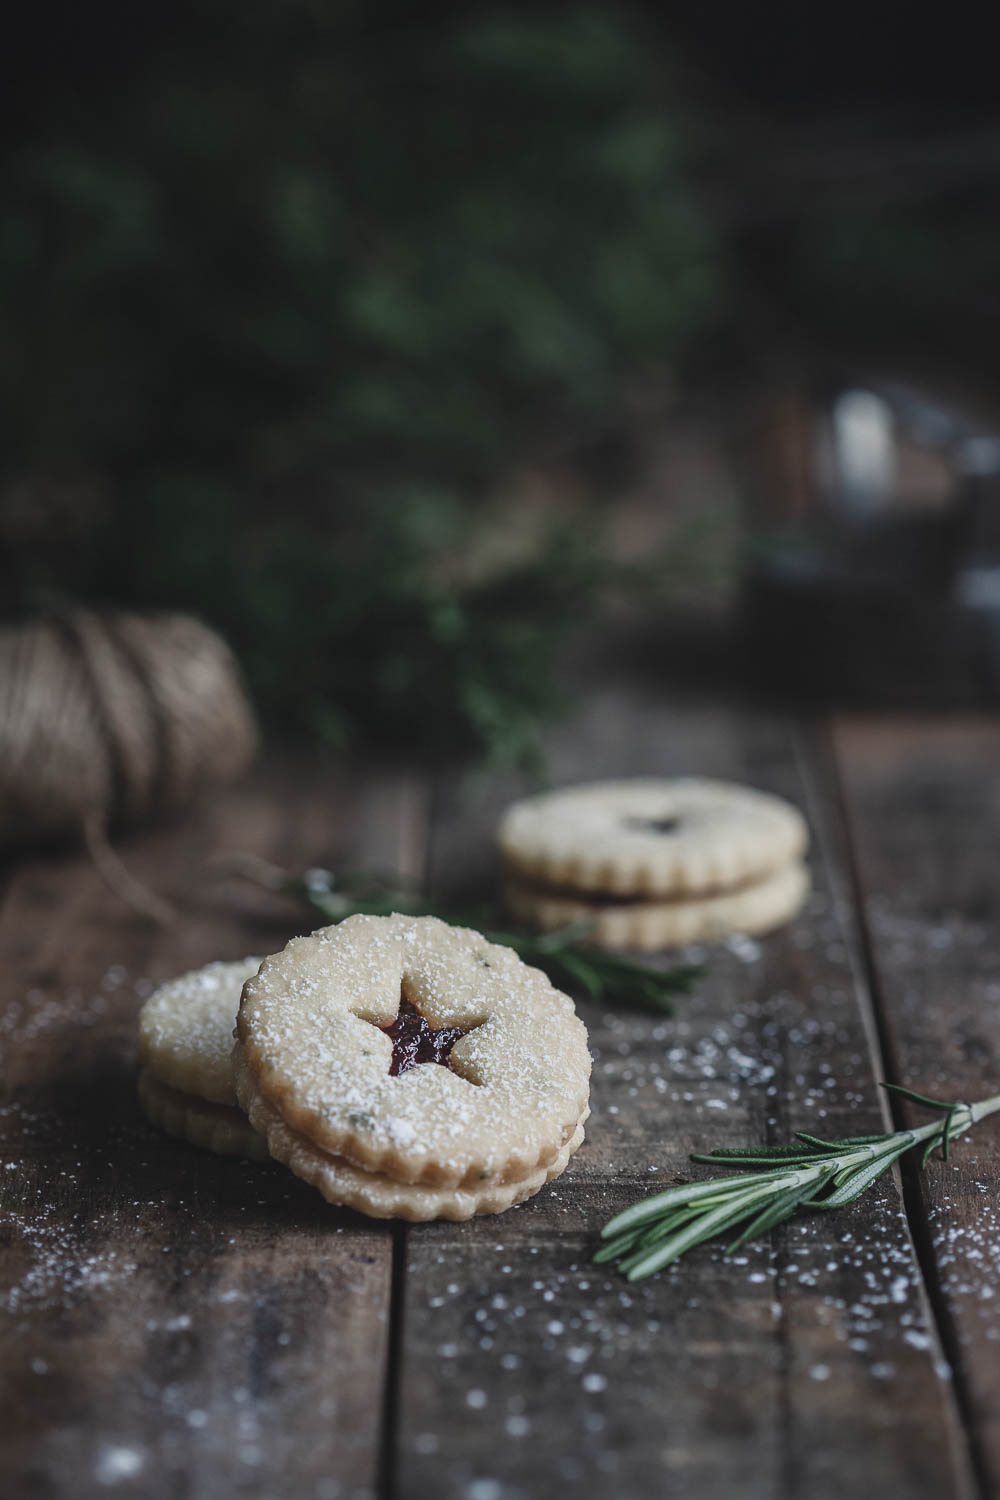 A Maine-themed holiday cookie - Rosemary Shortbread Linzer Cookies with Blueberry Preserves